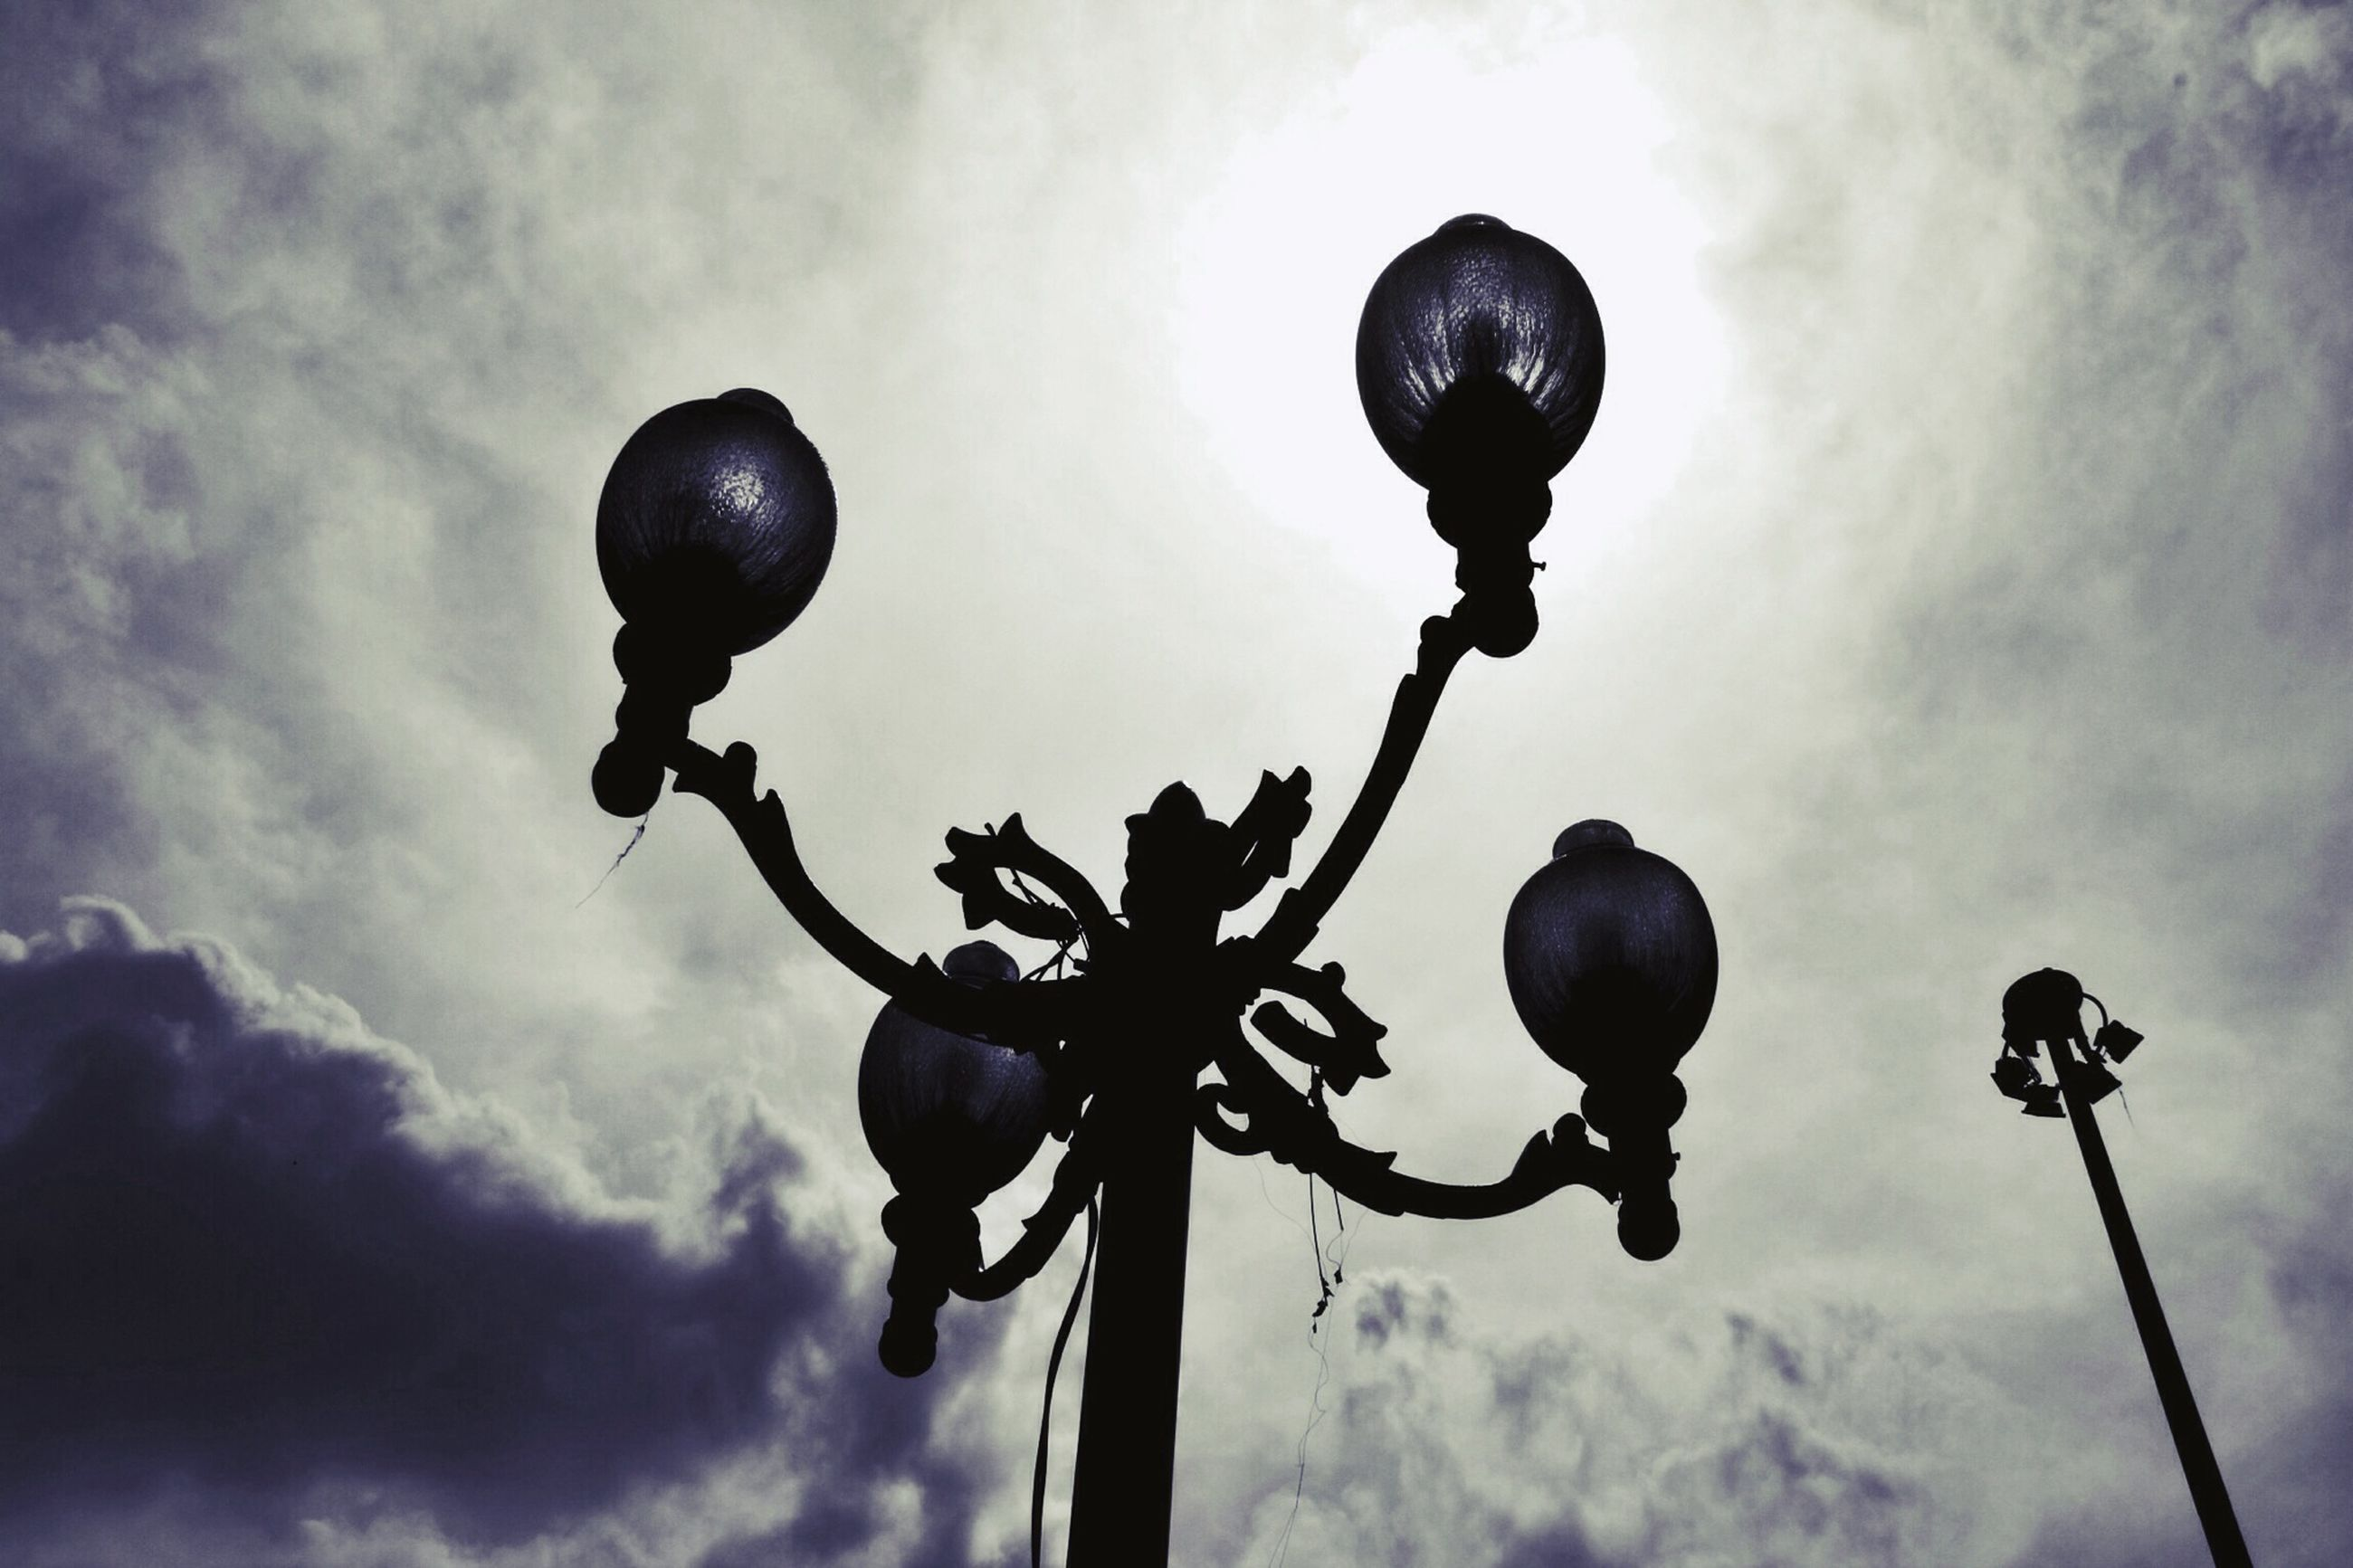 low angle view, sky, street light, lighting equipment, cloud - sky, silhouette, cloudy, cloud, outdoors, dusk, no people, hanging, electricity, day, sphere, nature, lamp post, metal, tree, connection